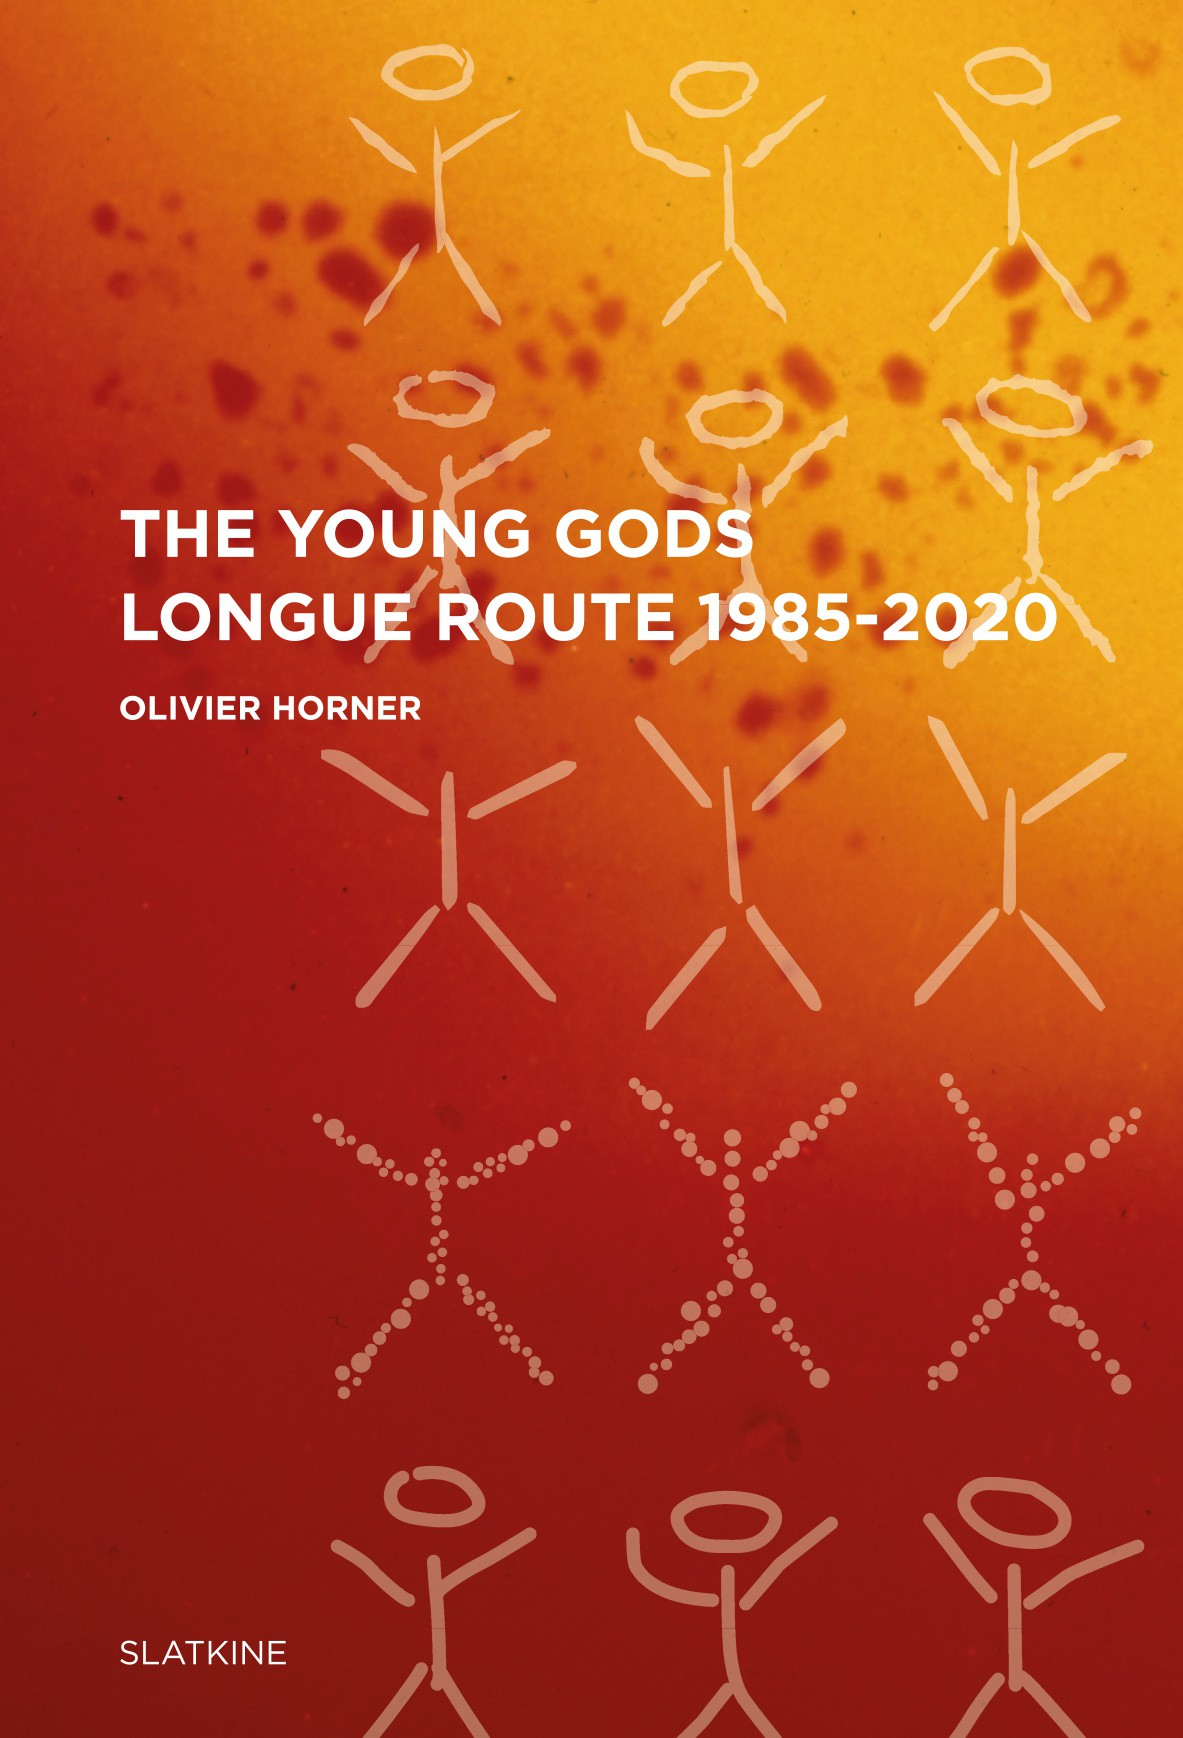 THE YOUNG GODS – Longue Route 1985-2020